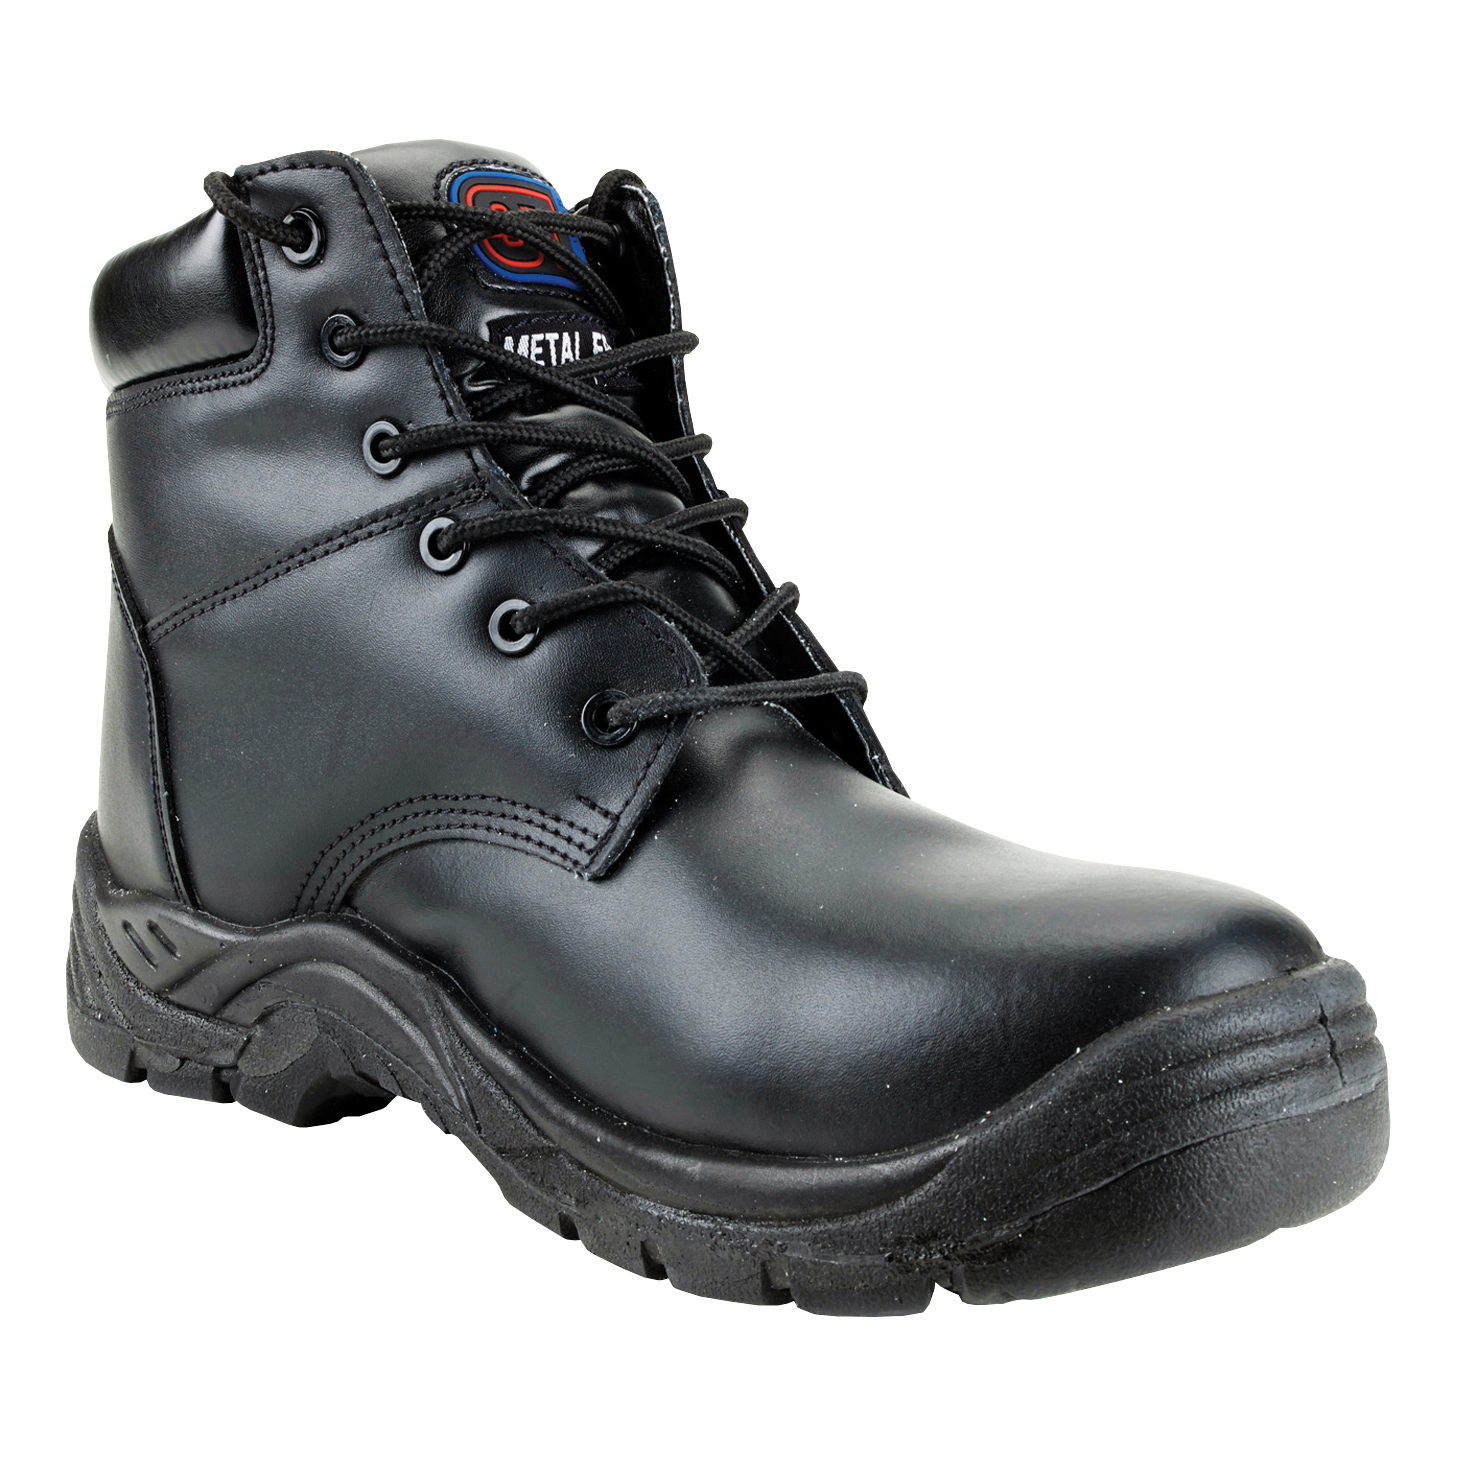 ST Toe Lite Boot Leather Comp' Midsole Safety Toecap Metal Free sze 9 Blk Ref 90174 *Approx 3 Day L/Time*